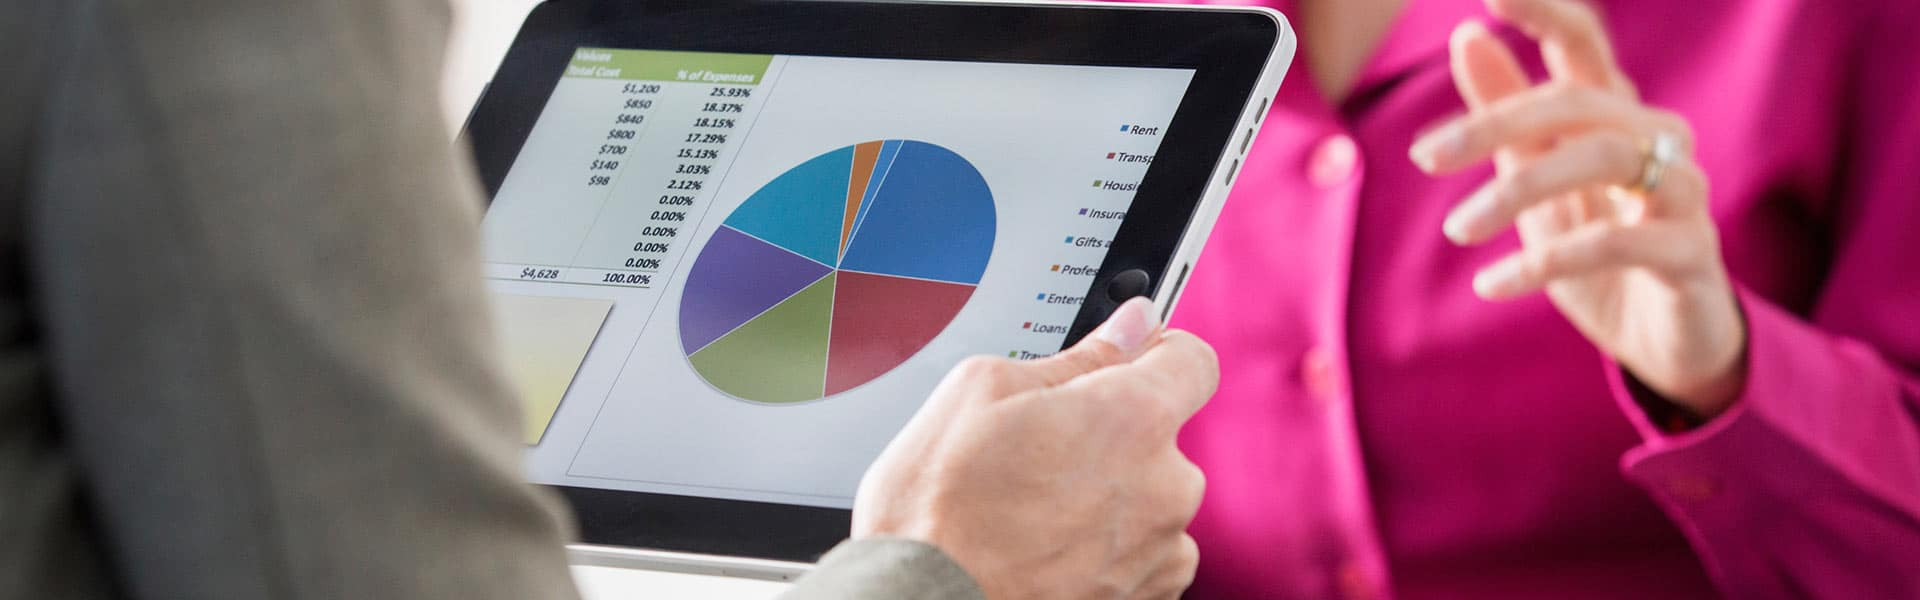 Total Spend Management in Financial Services | SAP News Center